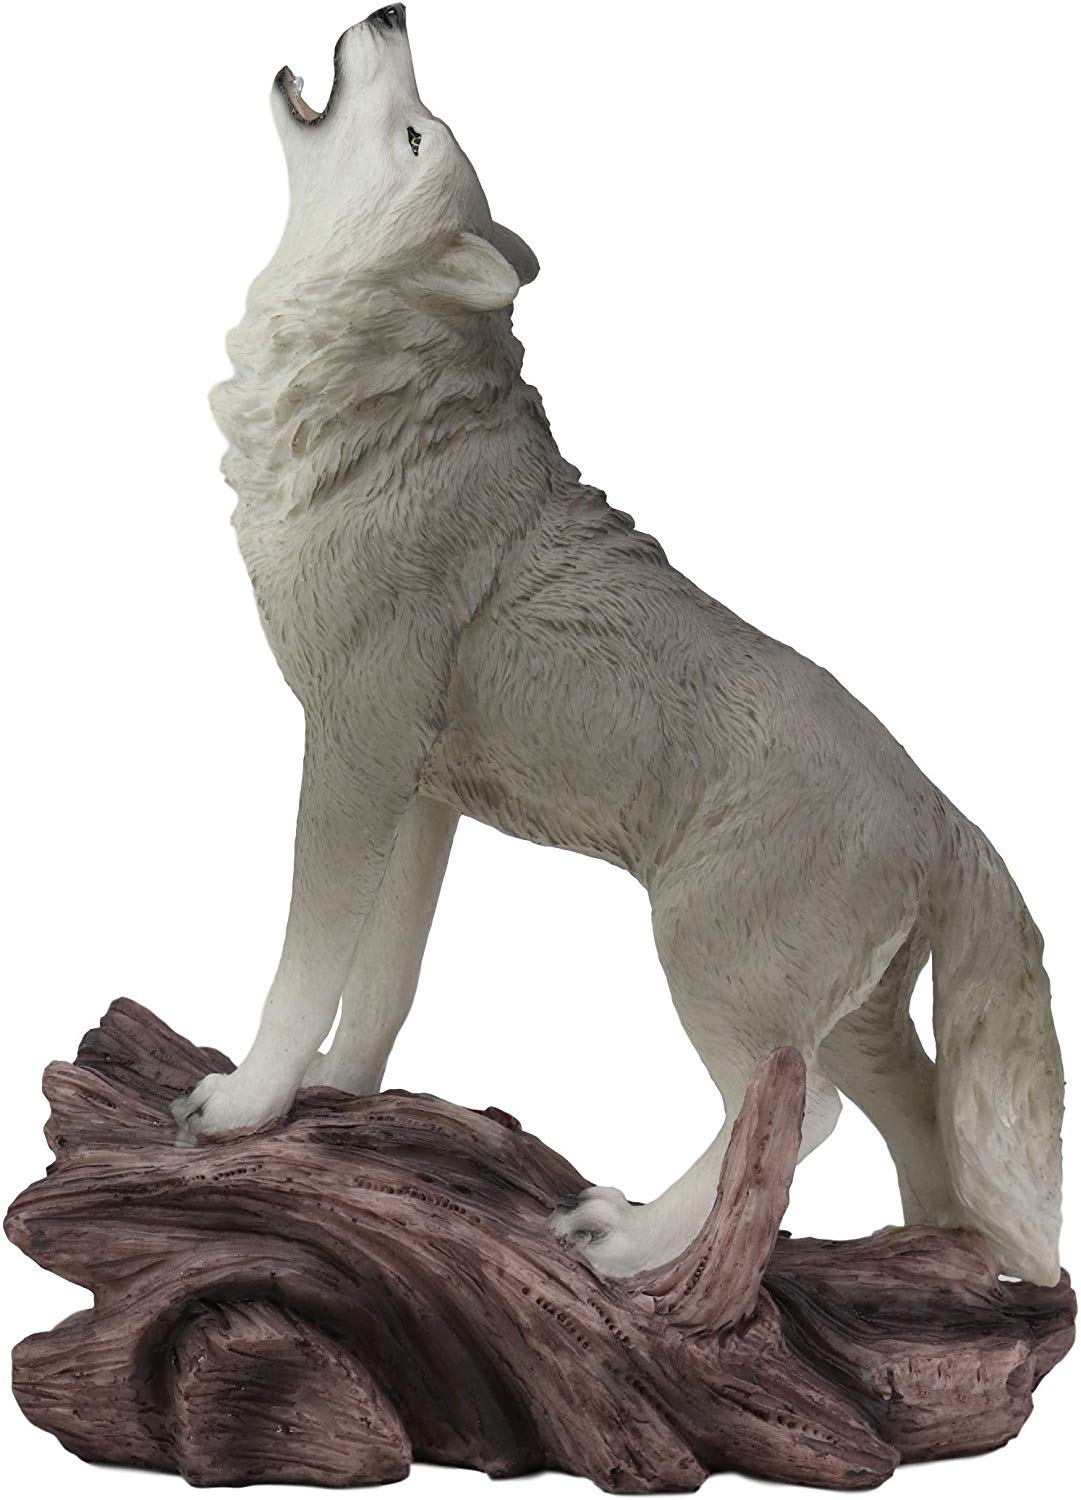 Hot sale artificial crafts customized resin white dire wolf sculpture